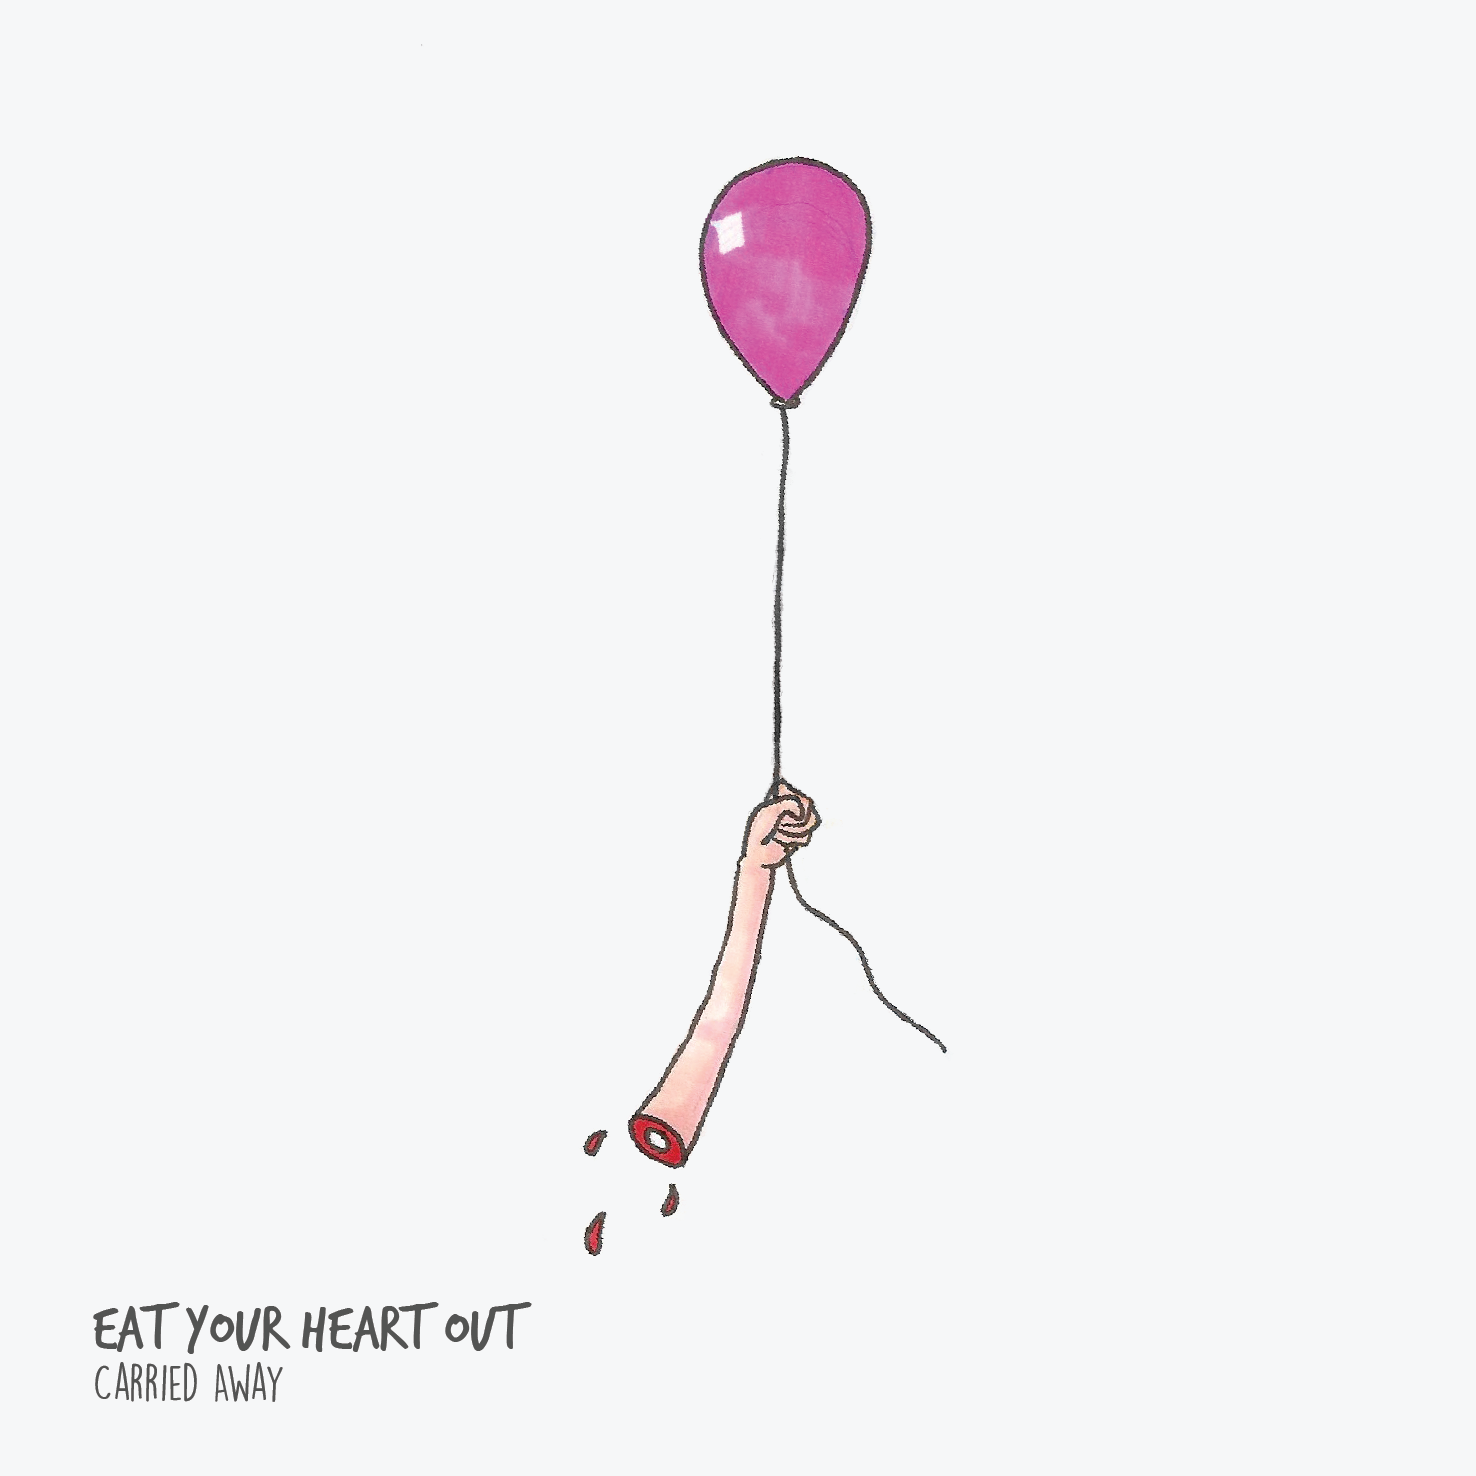 Eat Your Heart Out - Carried Away   Piper Payne   Fearless Records